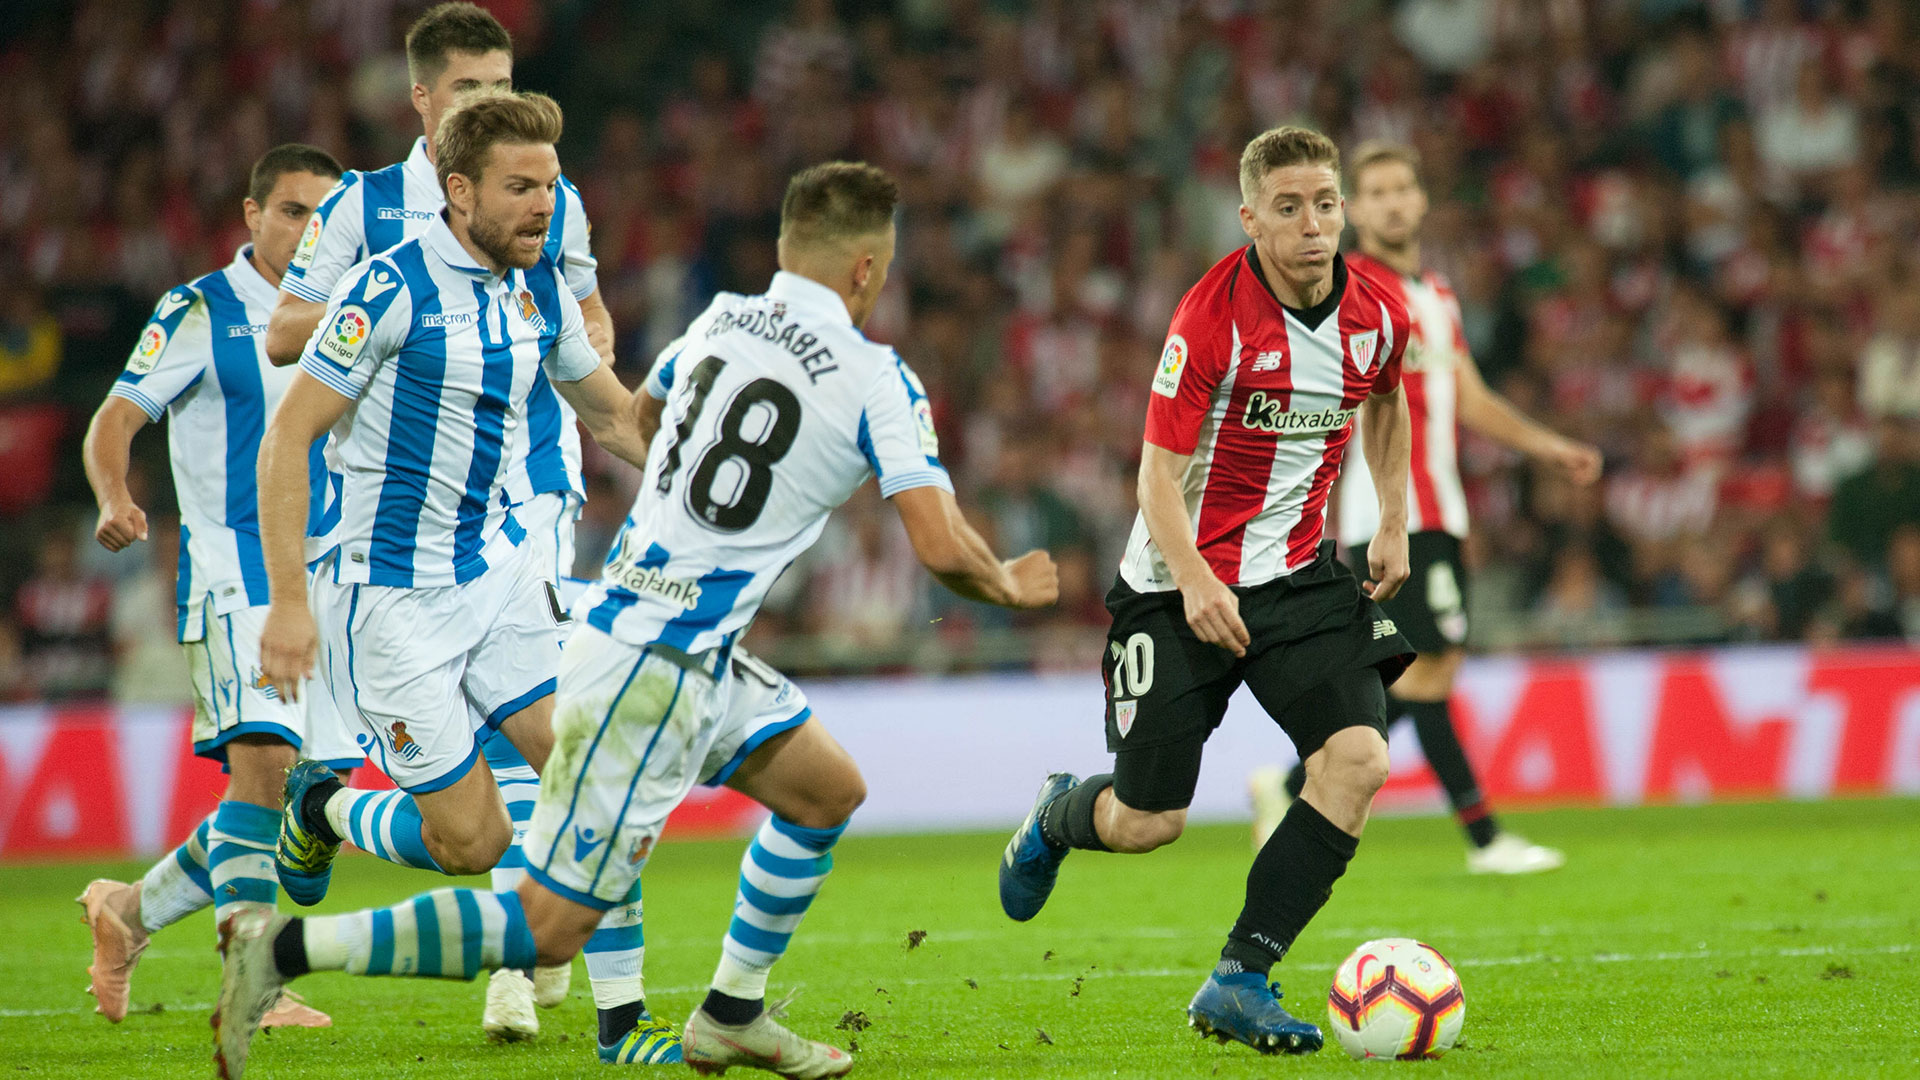 Real Sociedad-Athletic Club, data eta ordutegia